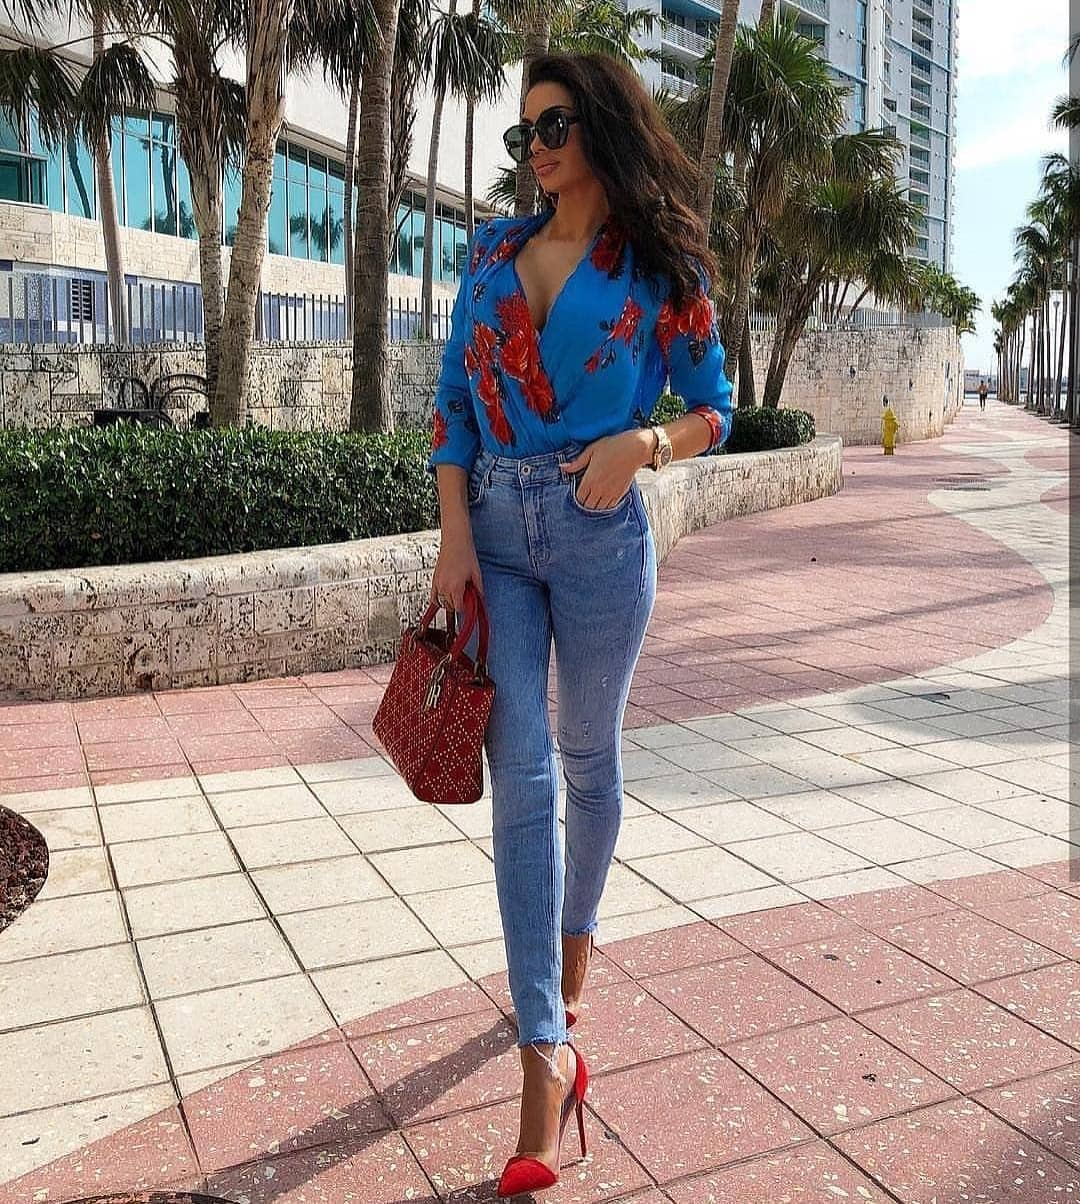 Blue Wrap Blouse In Red Florals With Skinny Jeans And Red Heels For Summer 2020